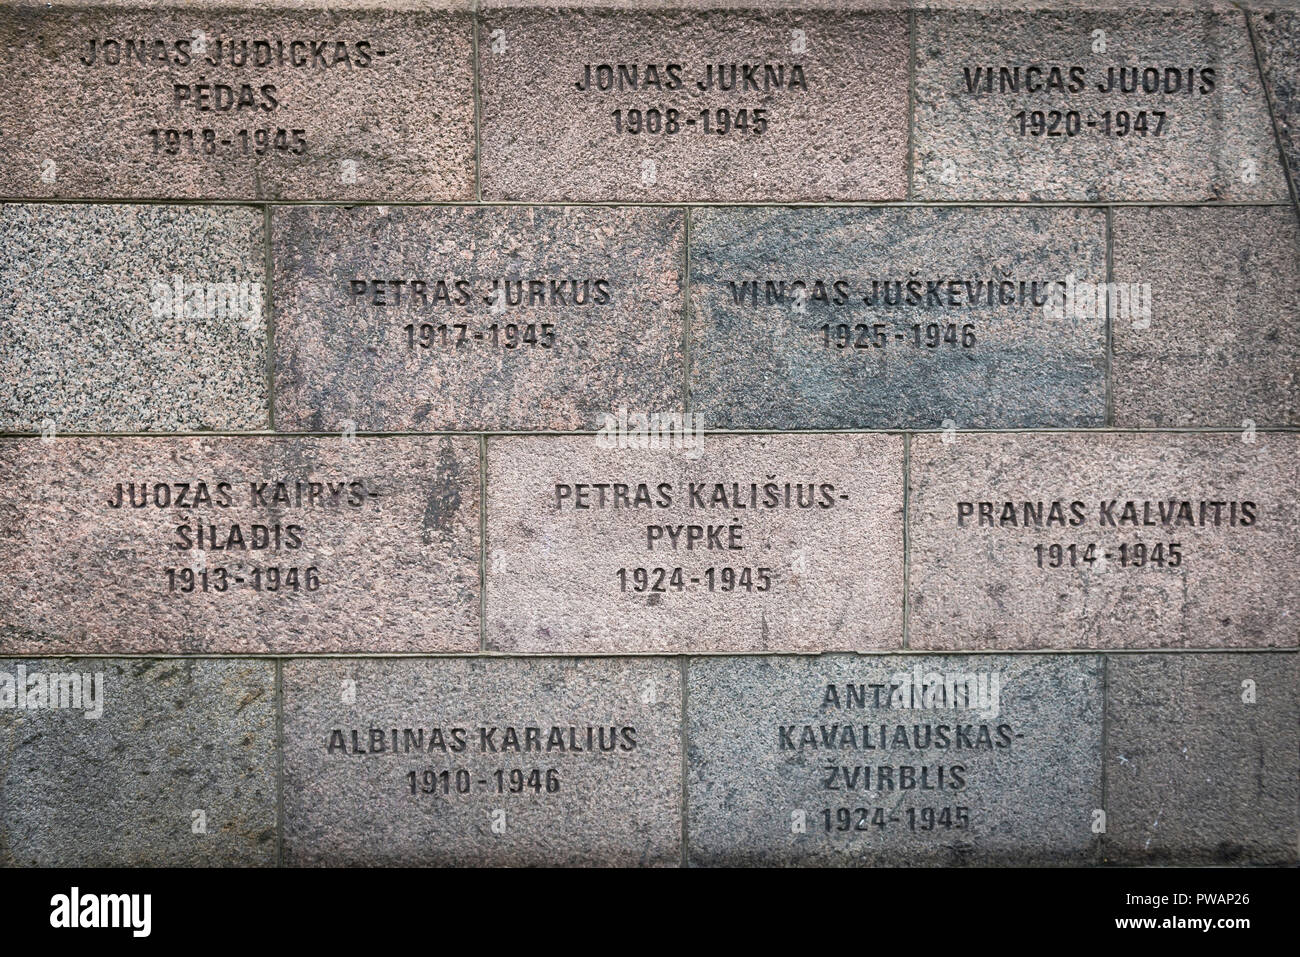 The Names of Lithuanians murdered during the Soviet and Nazi occupations inscribed on the exterior wall of the Museum Of Genocide Victims in Vilnius. - Stock Image